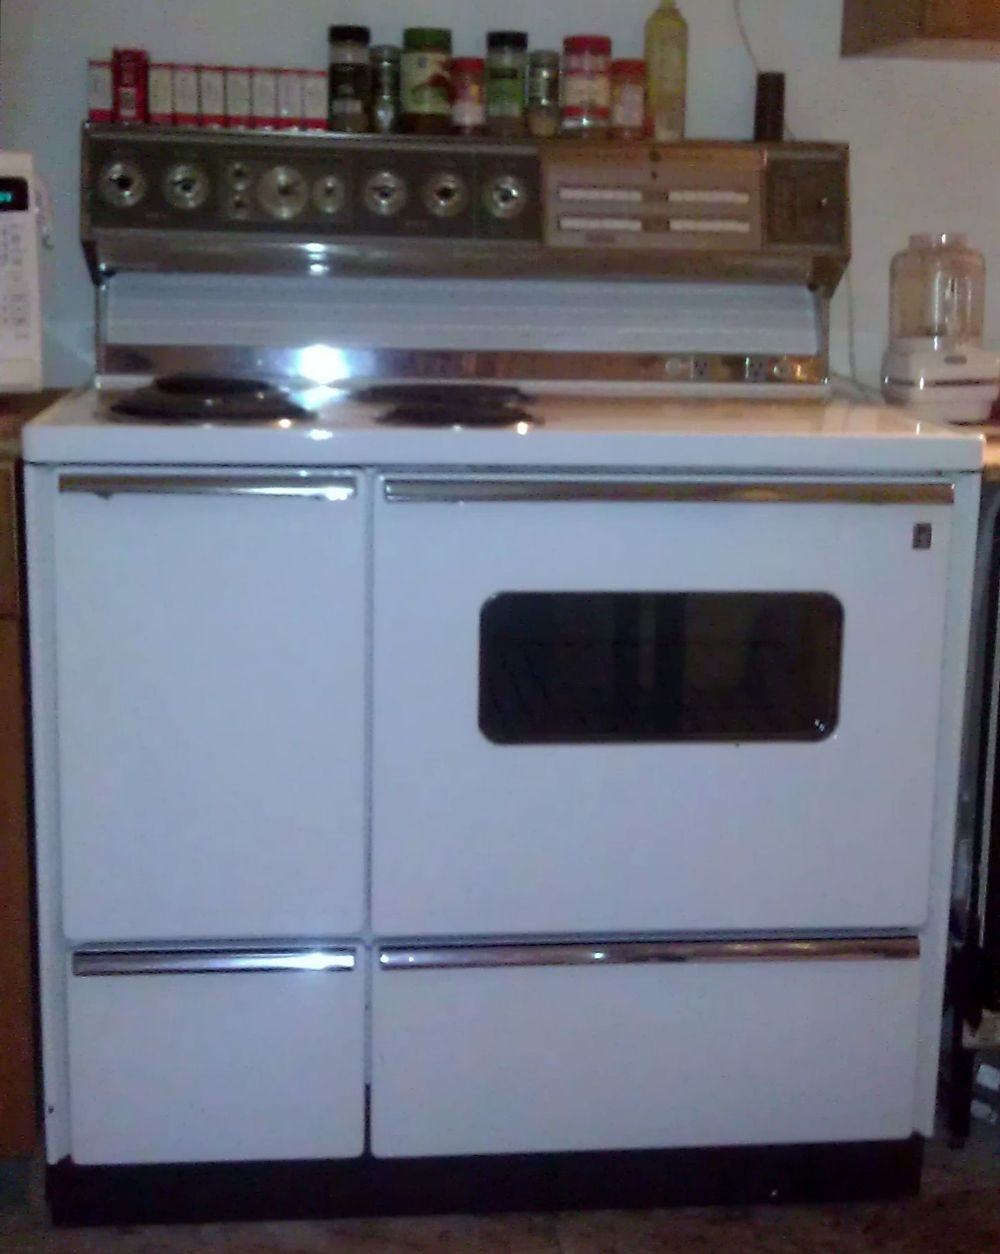 1967 Need Help Dating A Ge 40 Inch Dual Oven Stove Model J 408x2wh And Finding Owners Manual Dual Oven Stove Oven Kitchen Stove